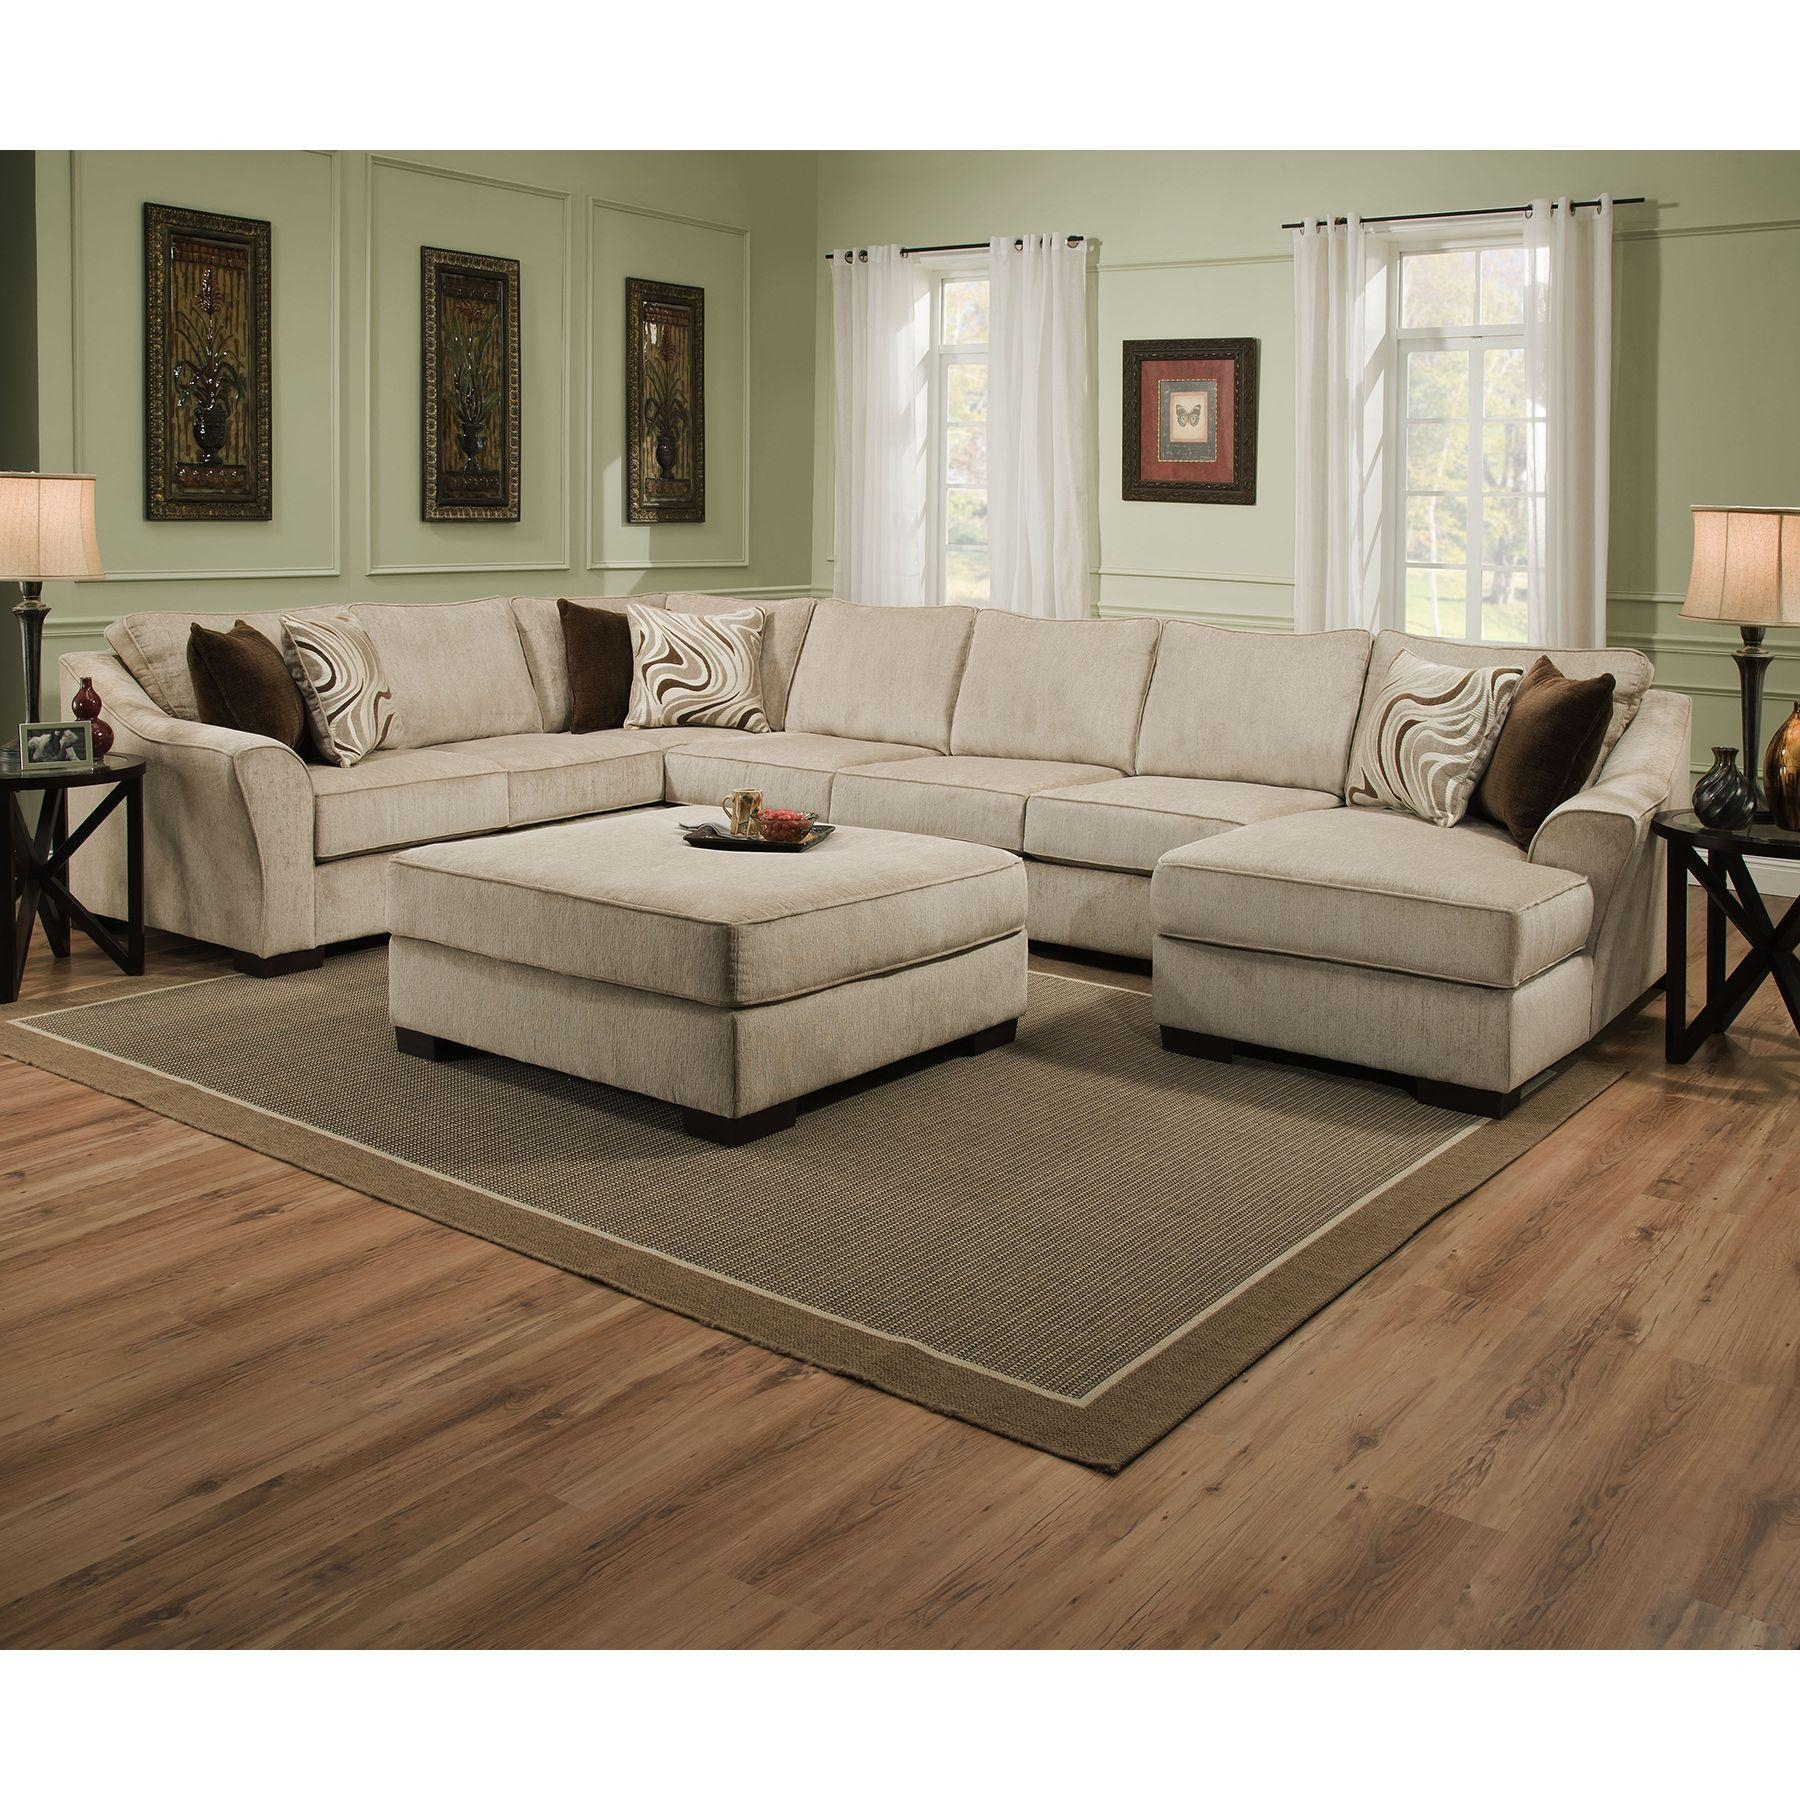 20 Best Large Comfortable Sectional Sofas